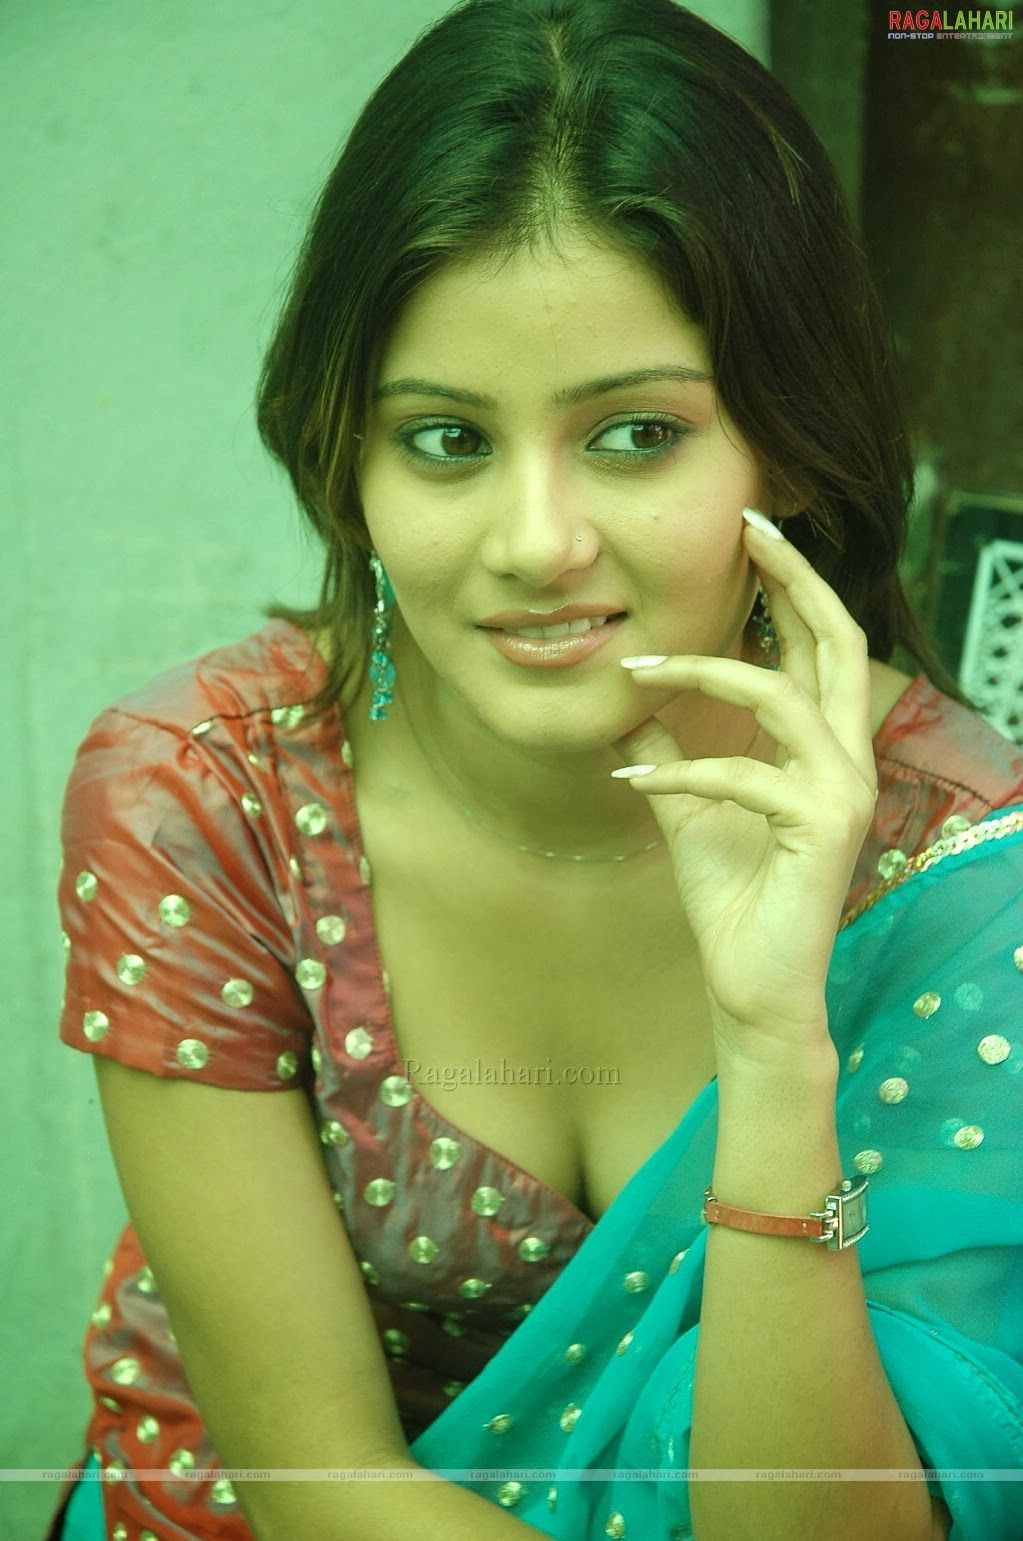 Indian Desi Sex Free Video Great pinmisterajay on ag | pinterest | cleavage hot